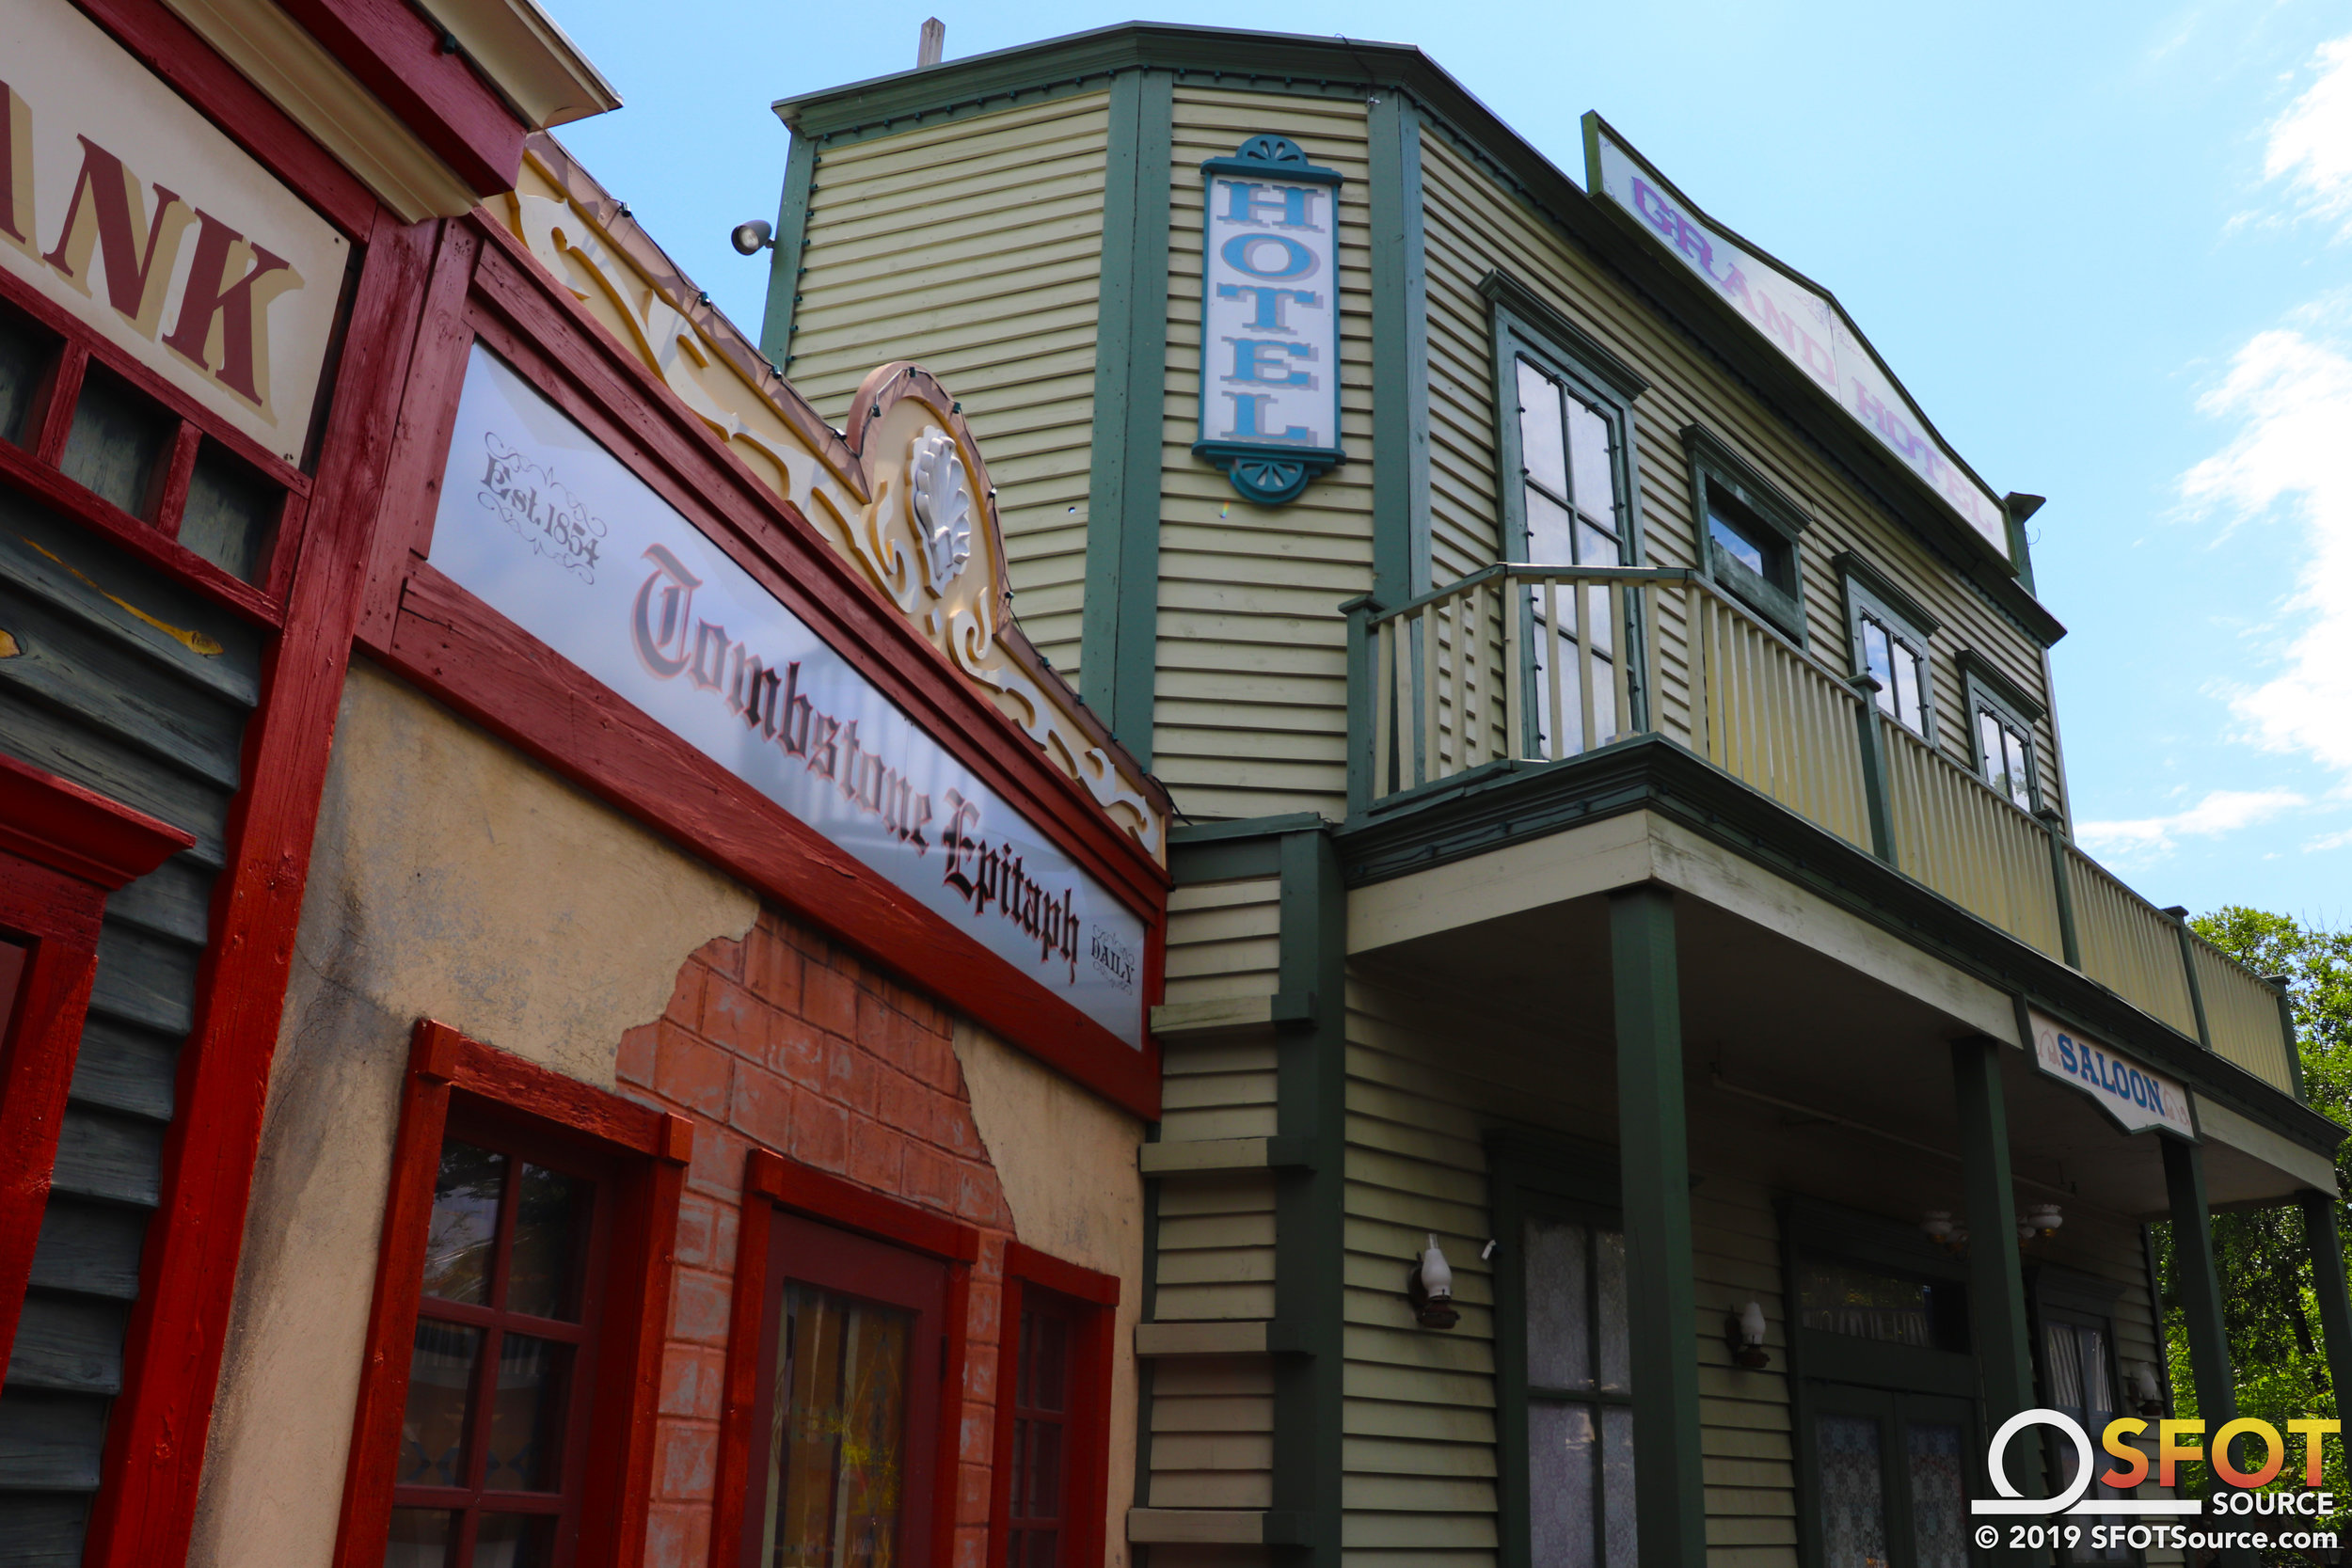 Guests experience western-themed facades all throughout the Texas section.